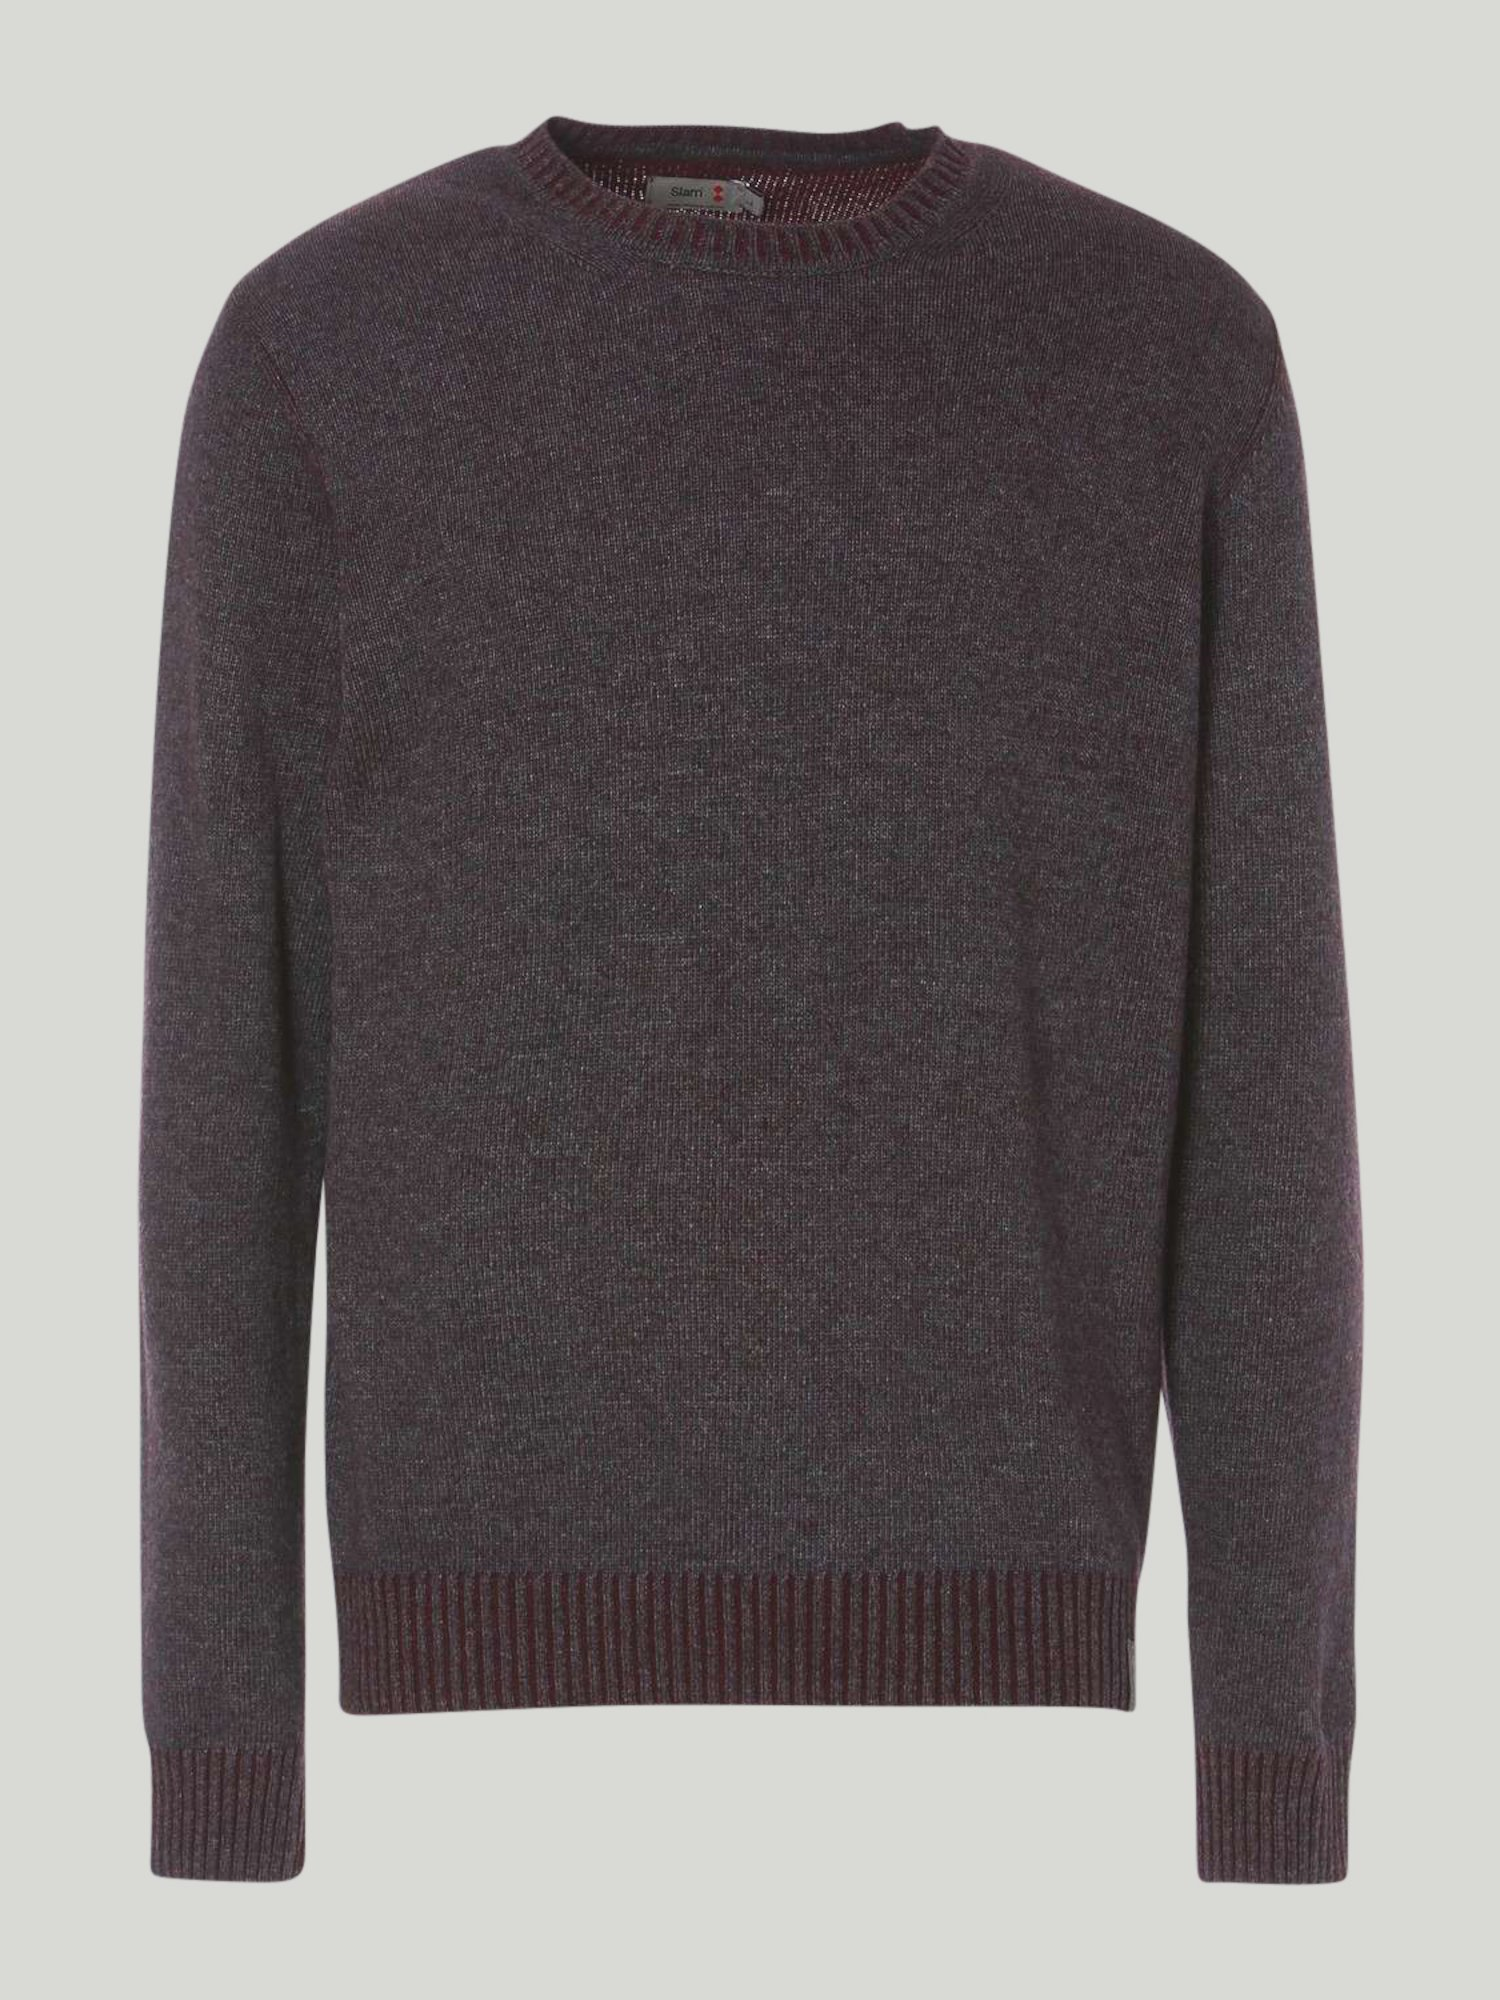 Chatham Sweater - Anthracite